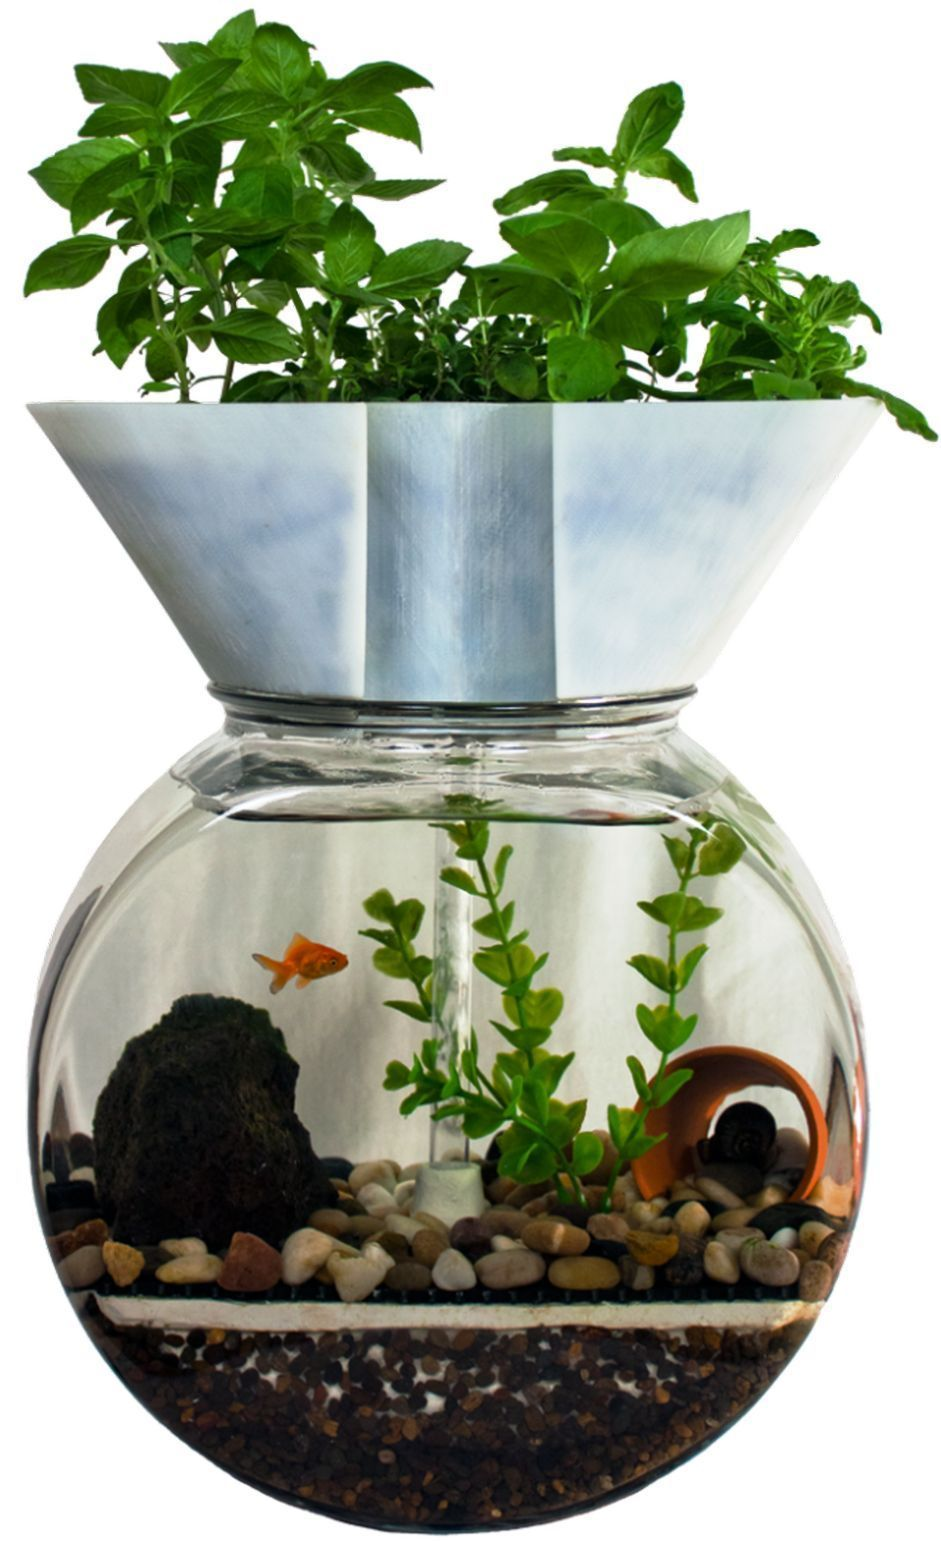 This is diy indoor aquaponics fish tank ideas image you can read